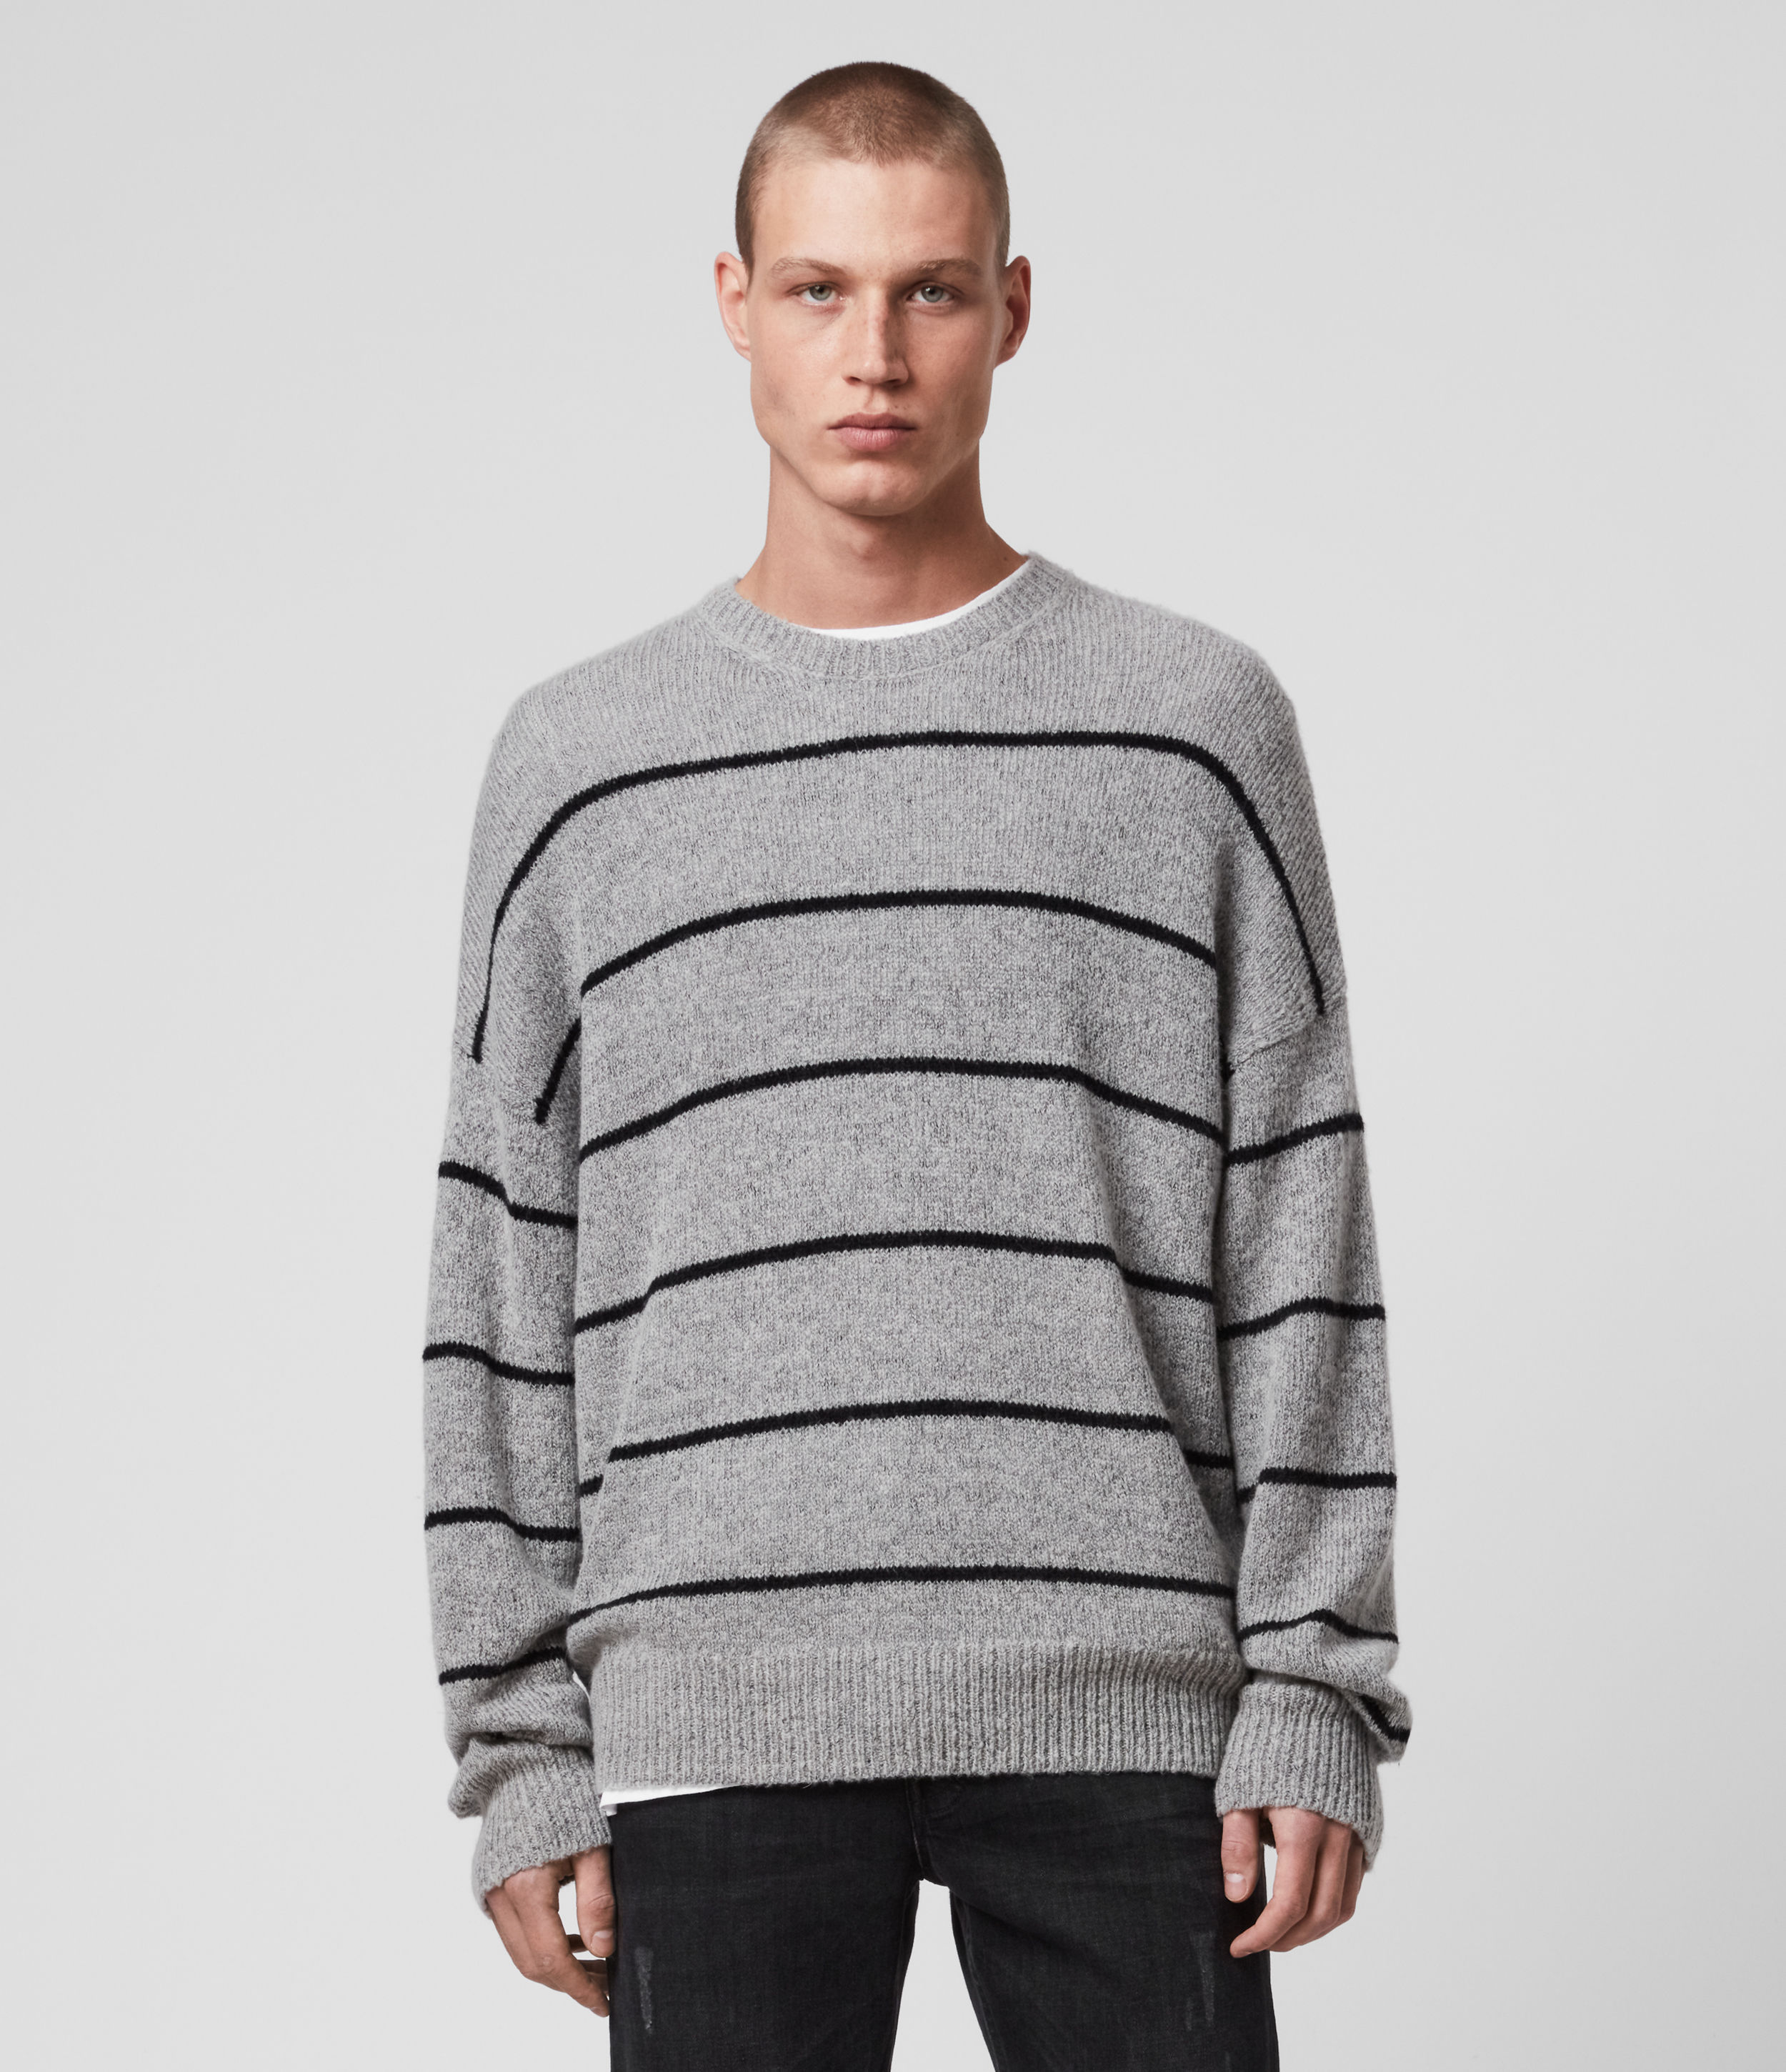 AllSaints Mens Flander Crew Jumper, Grey and Black, Size: S